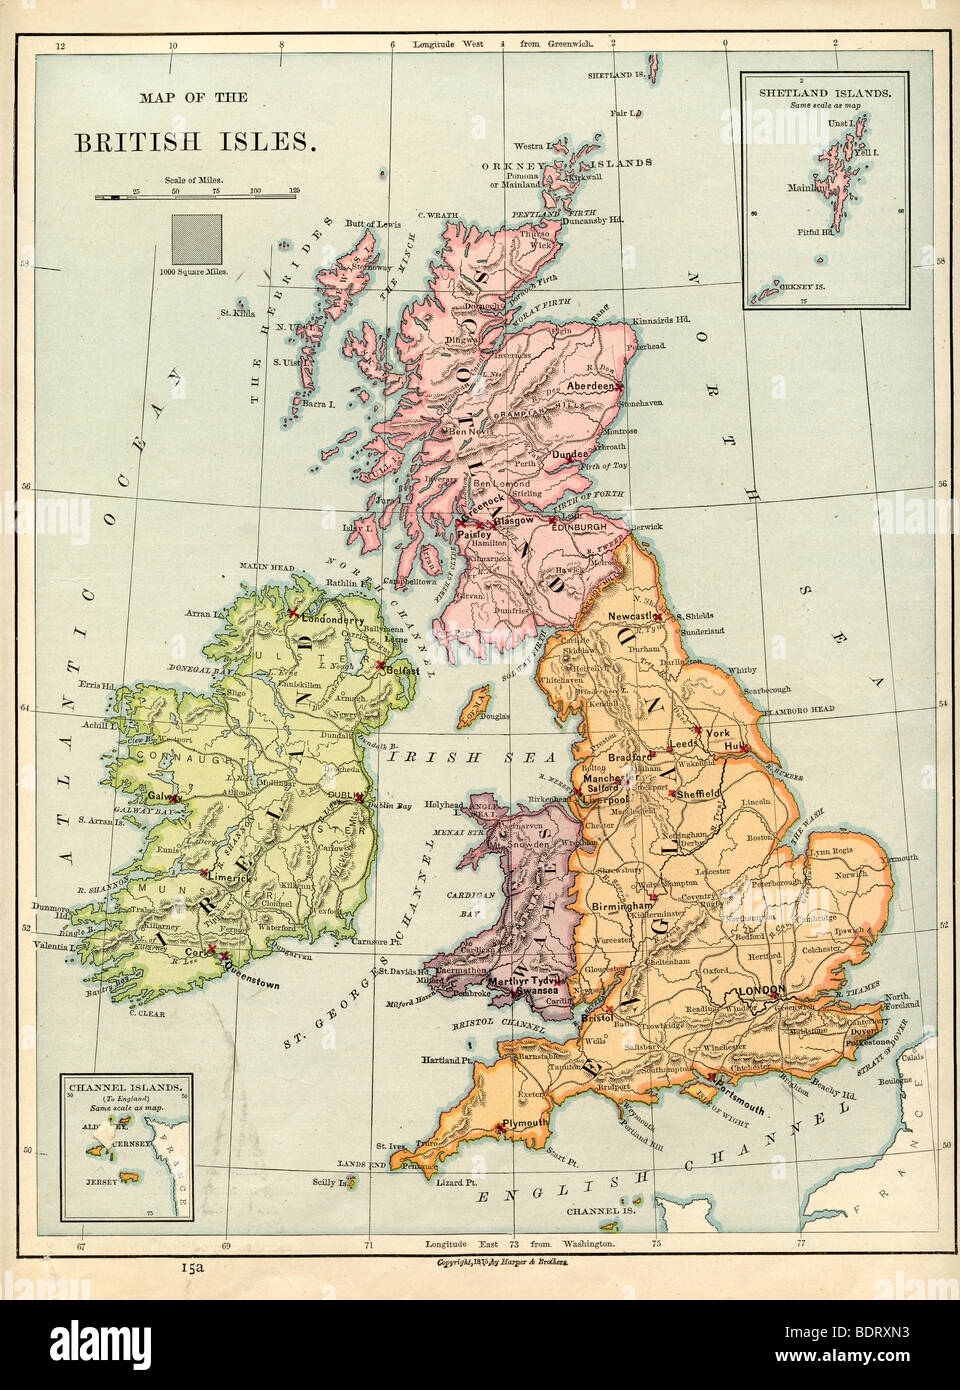 British Isles Map Stock Photos & British Isles Map Stock Images - Alamy